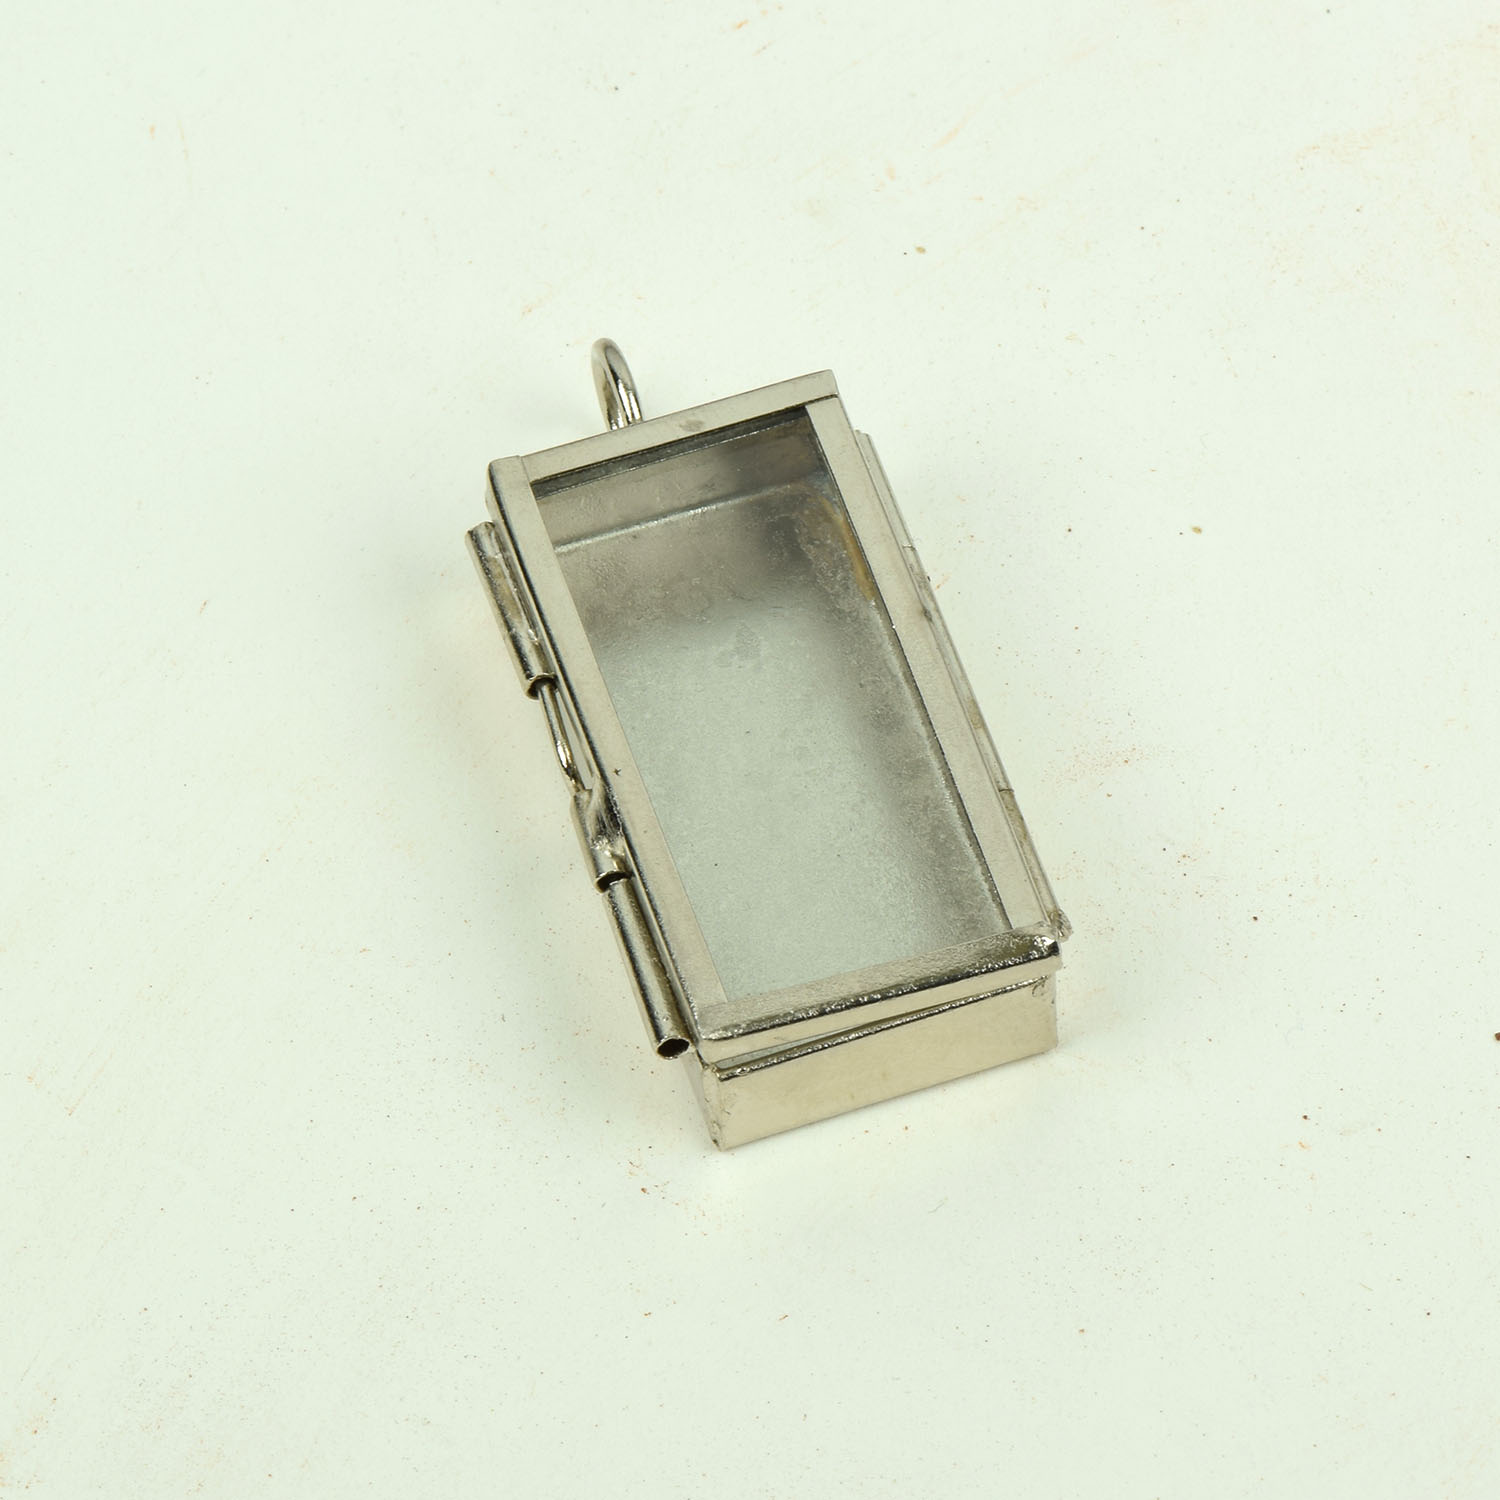 silver lockets grosses square mattiert p large shop de extra silber medaillon schmuckwerk